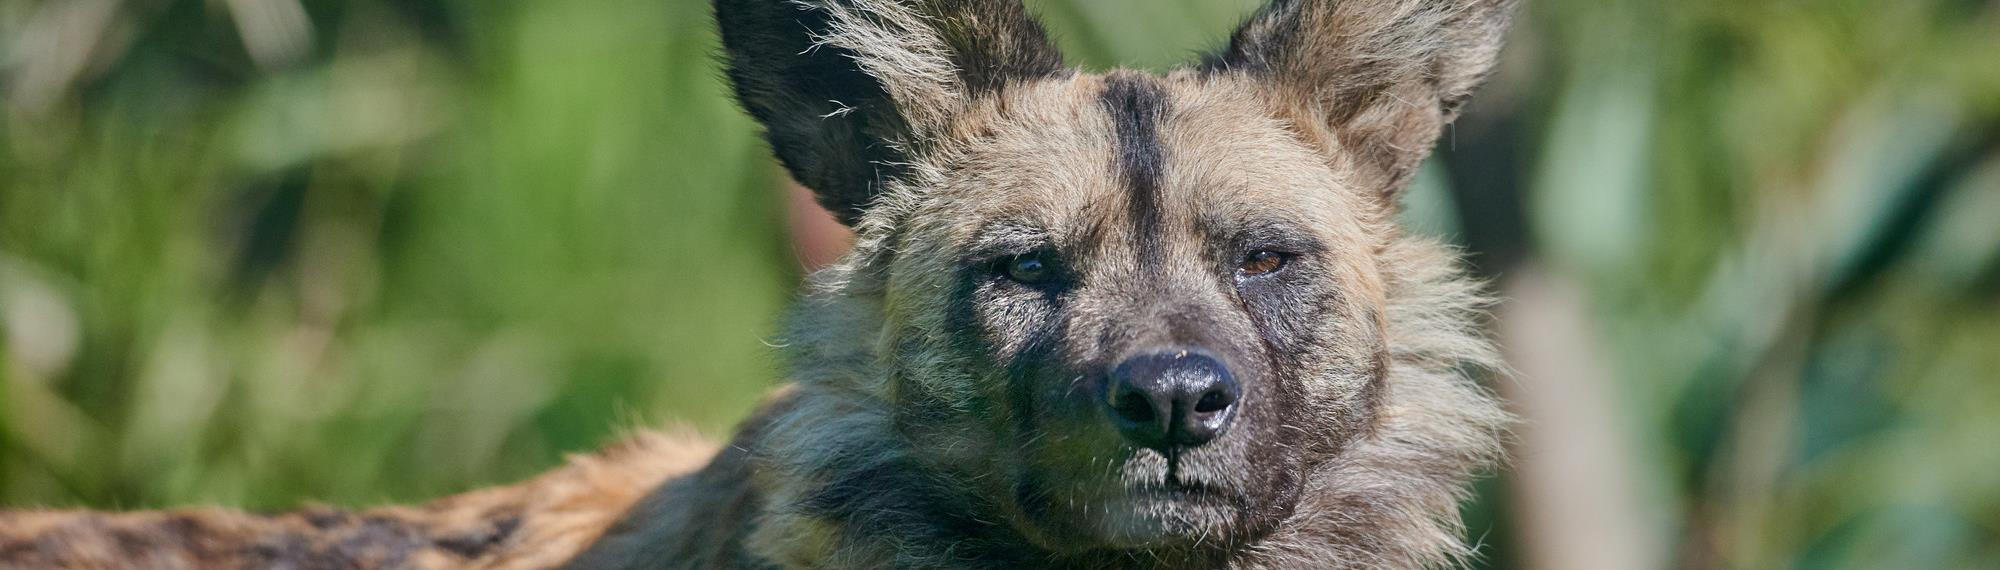 African Wild Dog portrait. He is looking sternly at the camera.